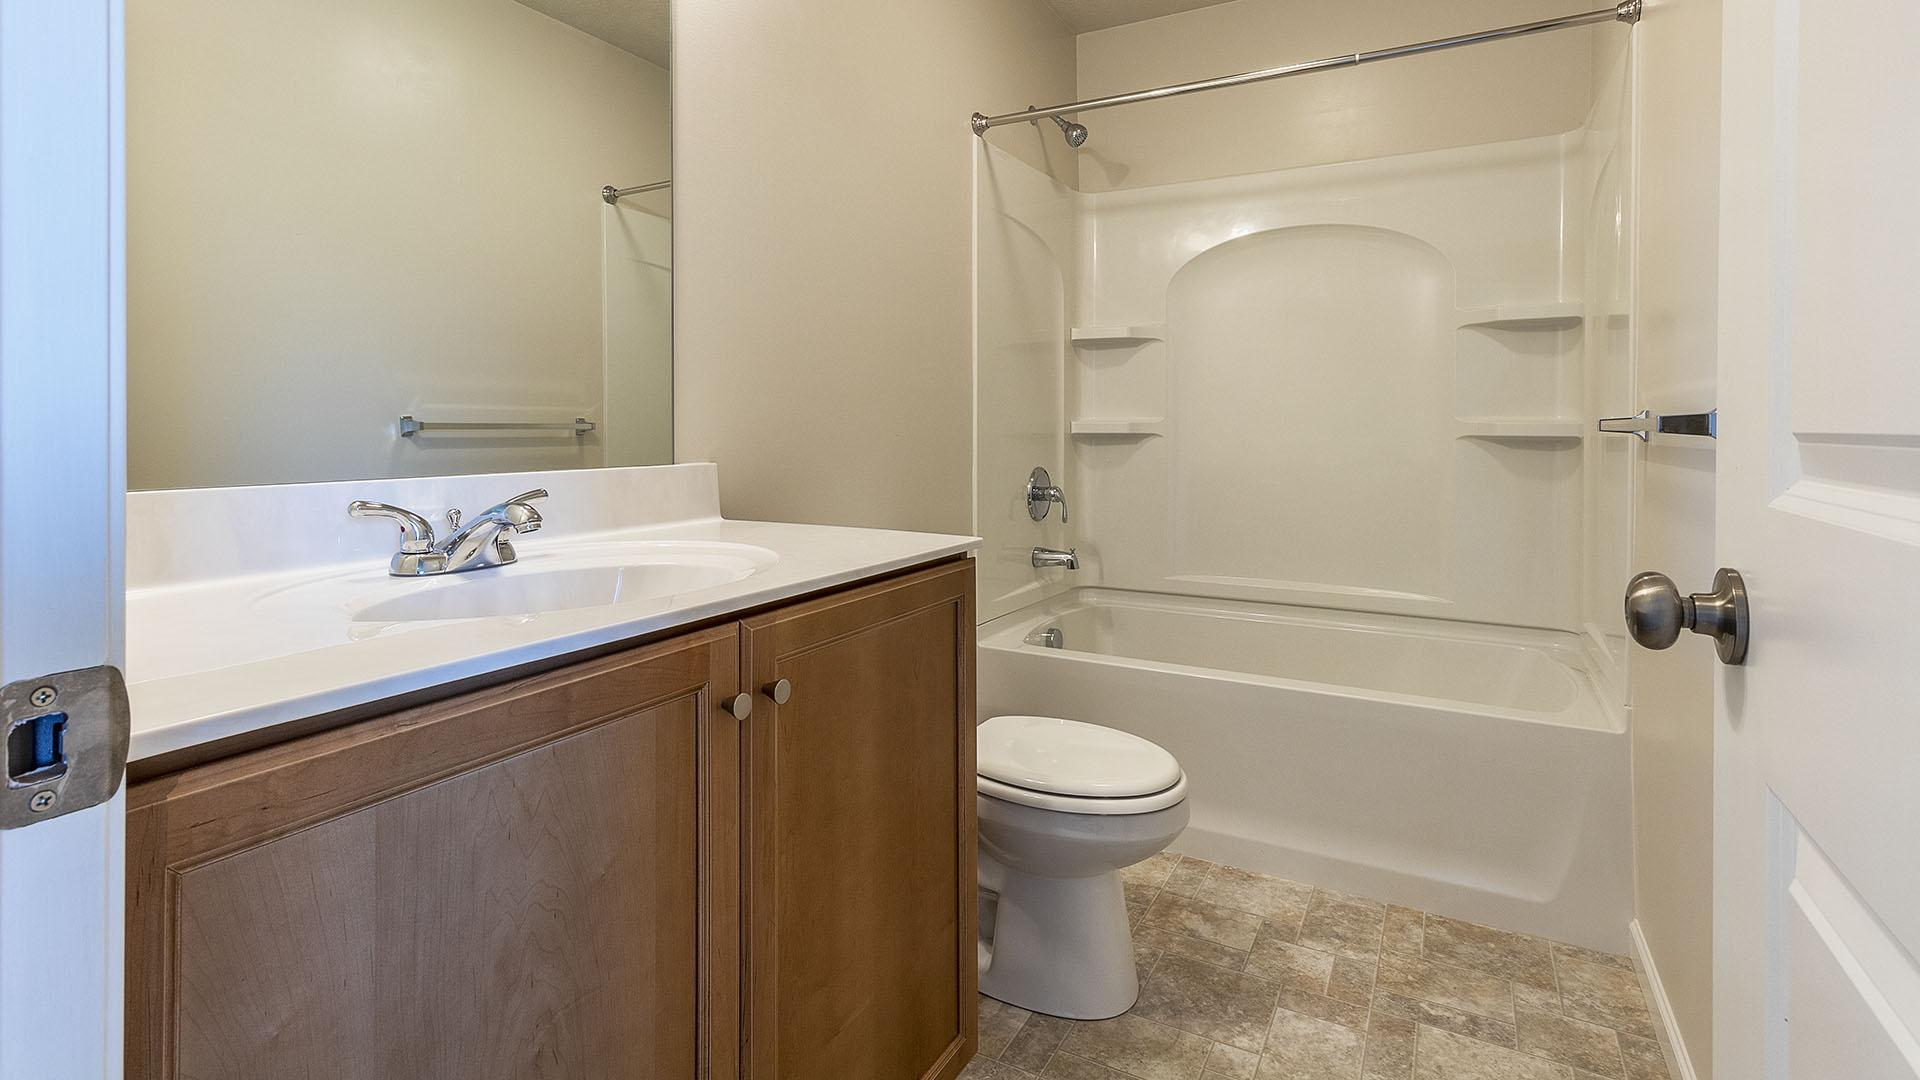 Bathroom featured in the Wynwood By S & A Homes in Altoona, PA